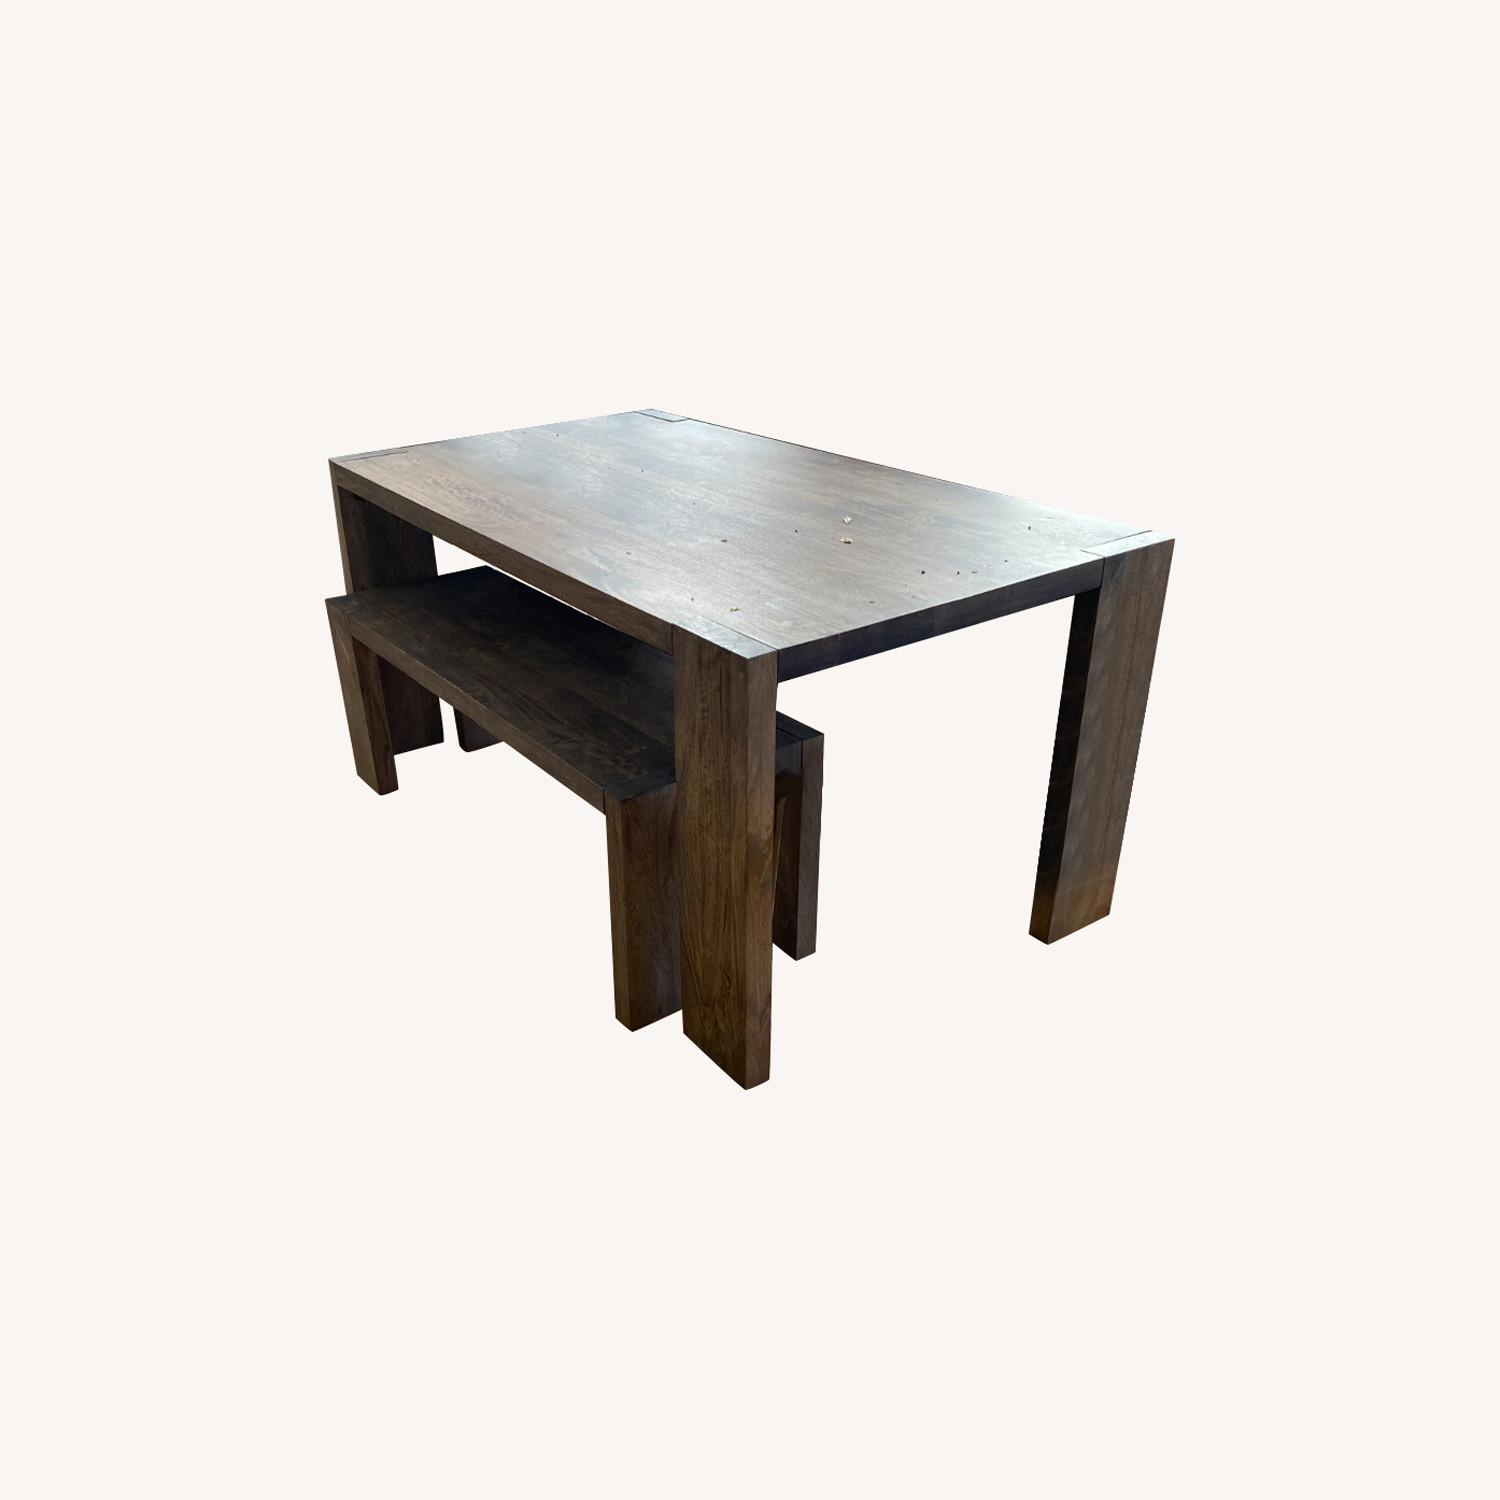 CB2 Solid Wood Blox Dining Table & Bench Set - image-0